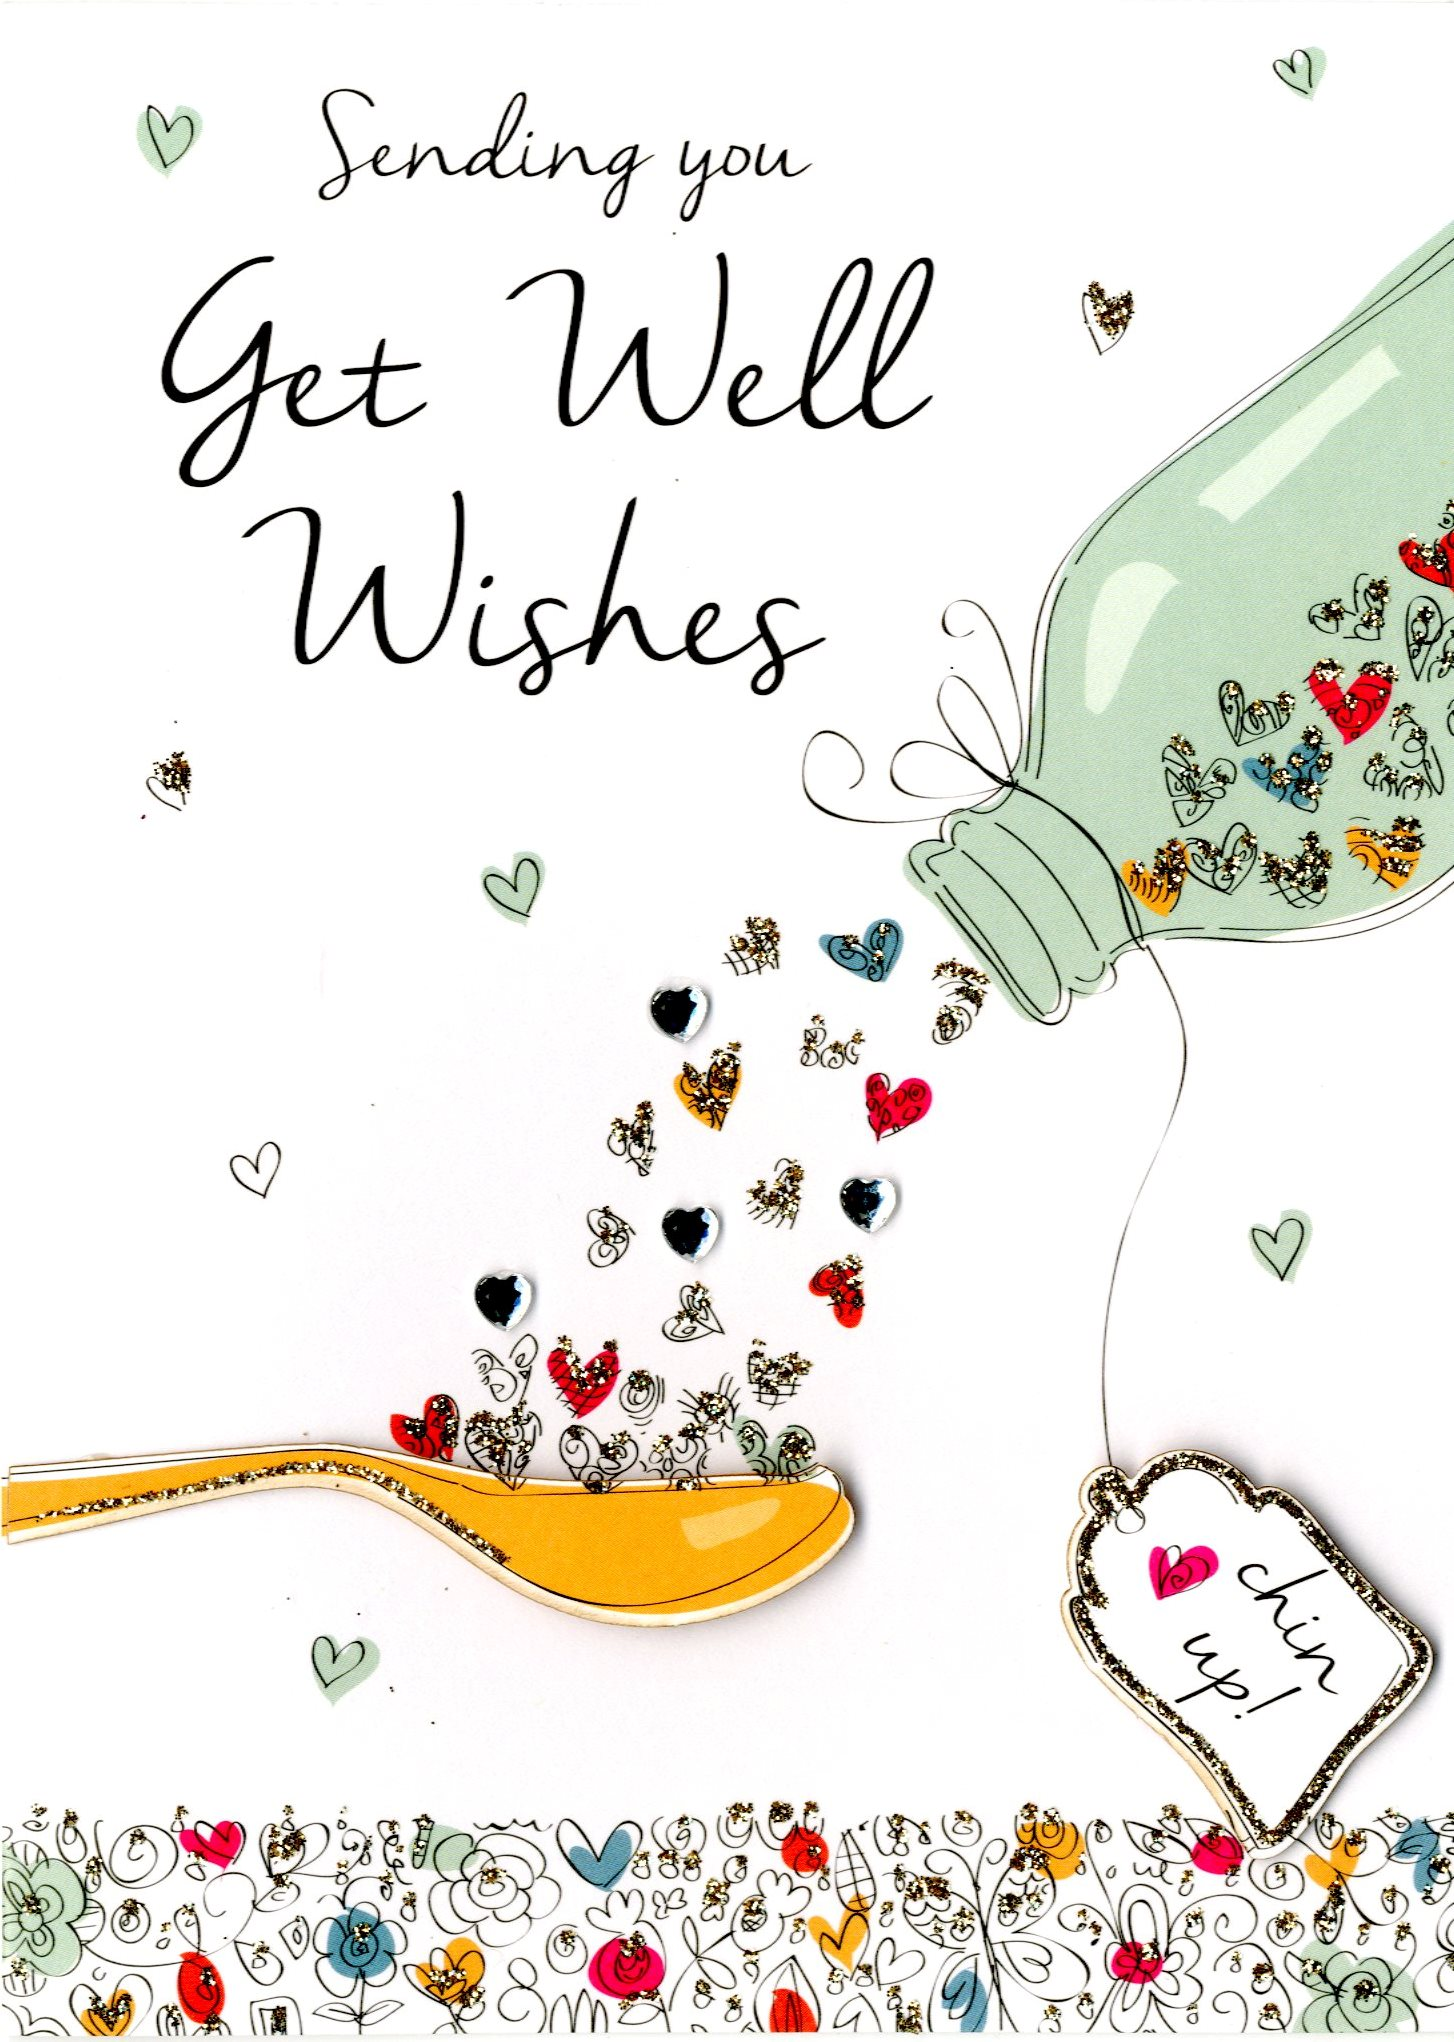 Get Well Wishes Greeting Card Cards Love Kates